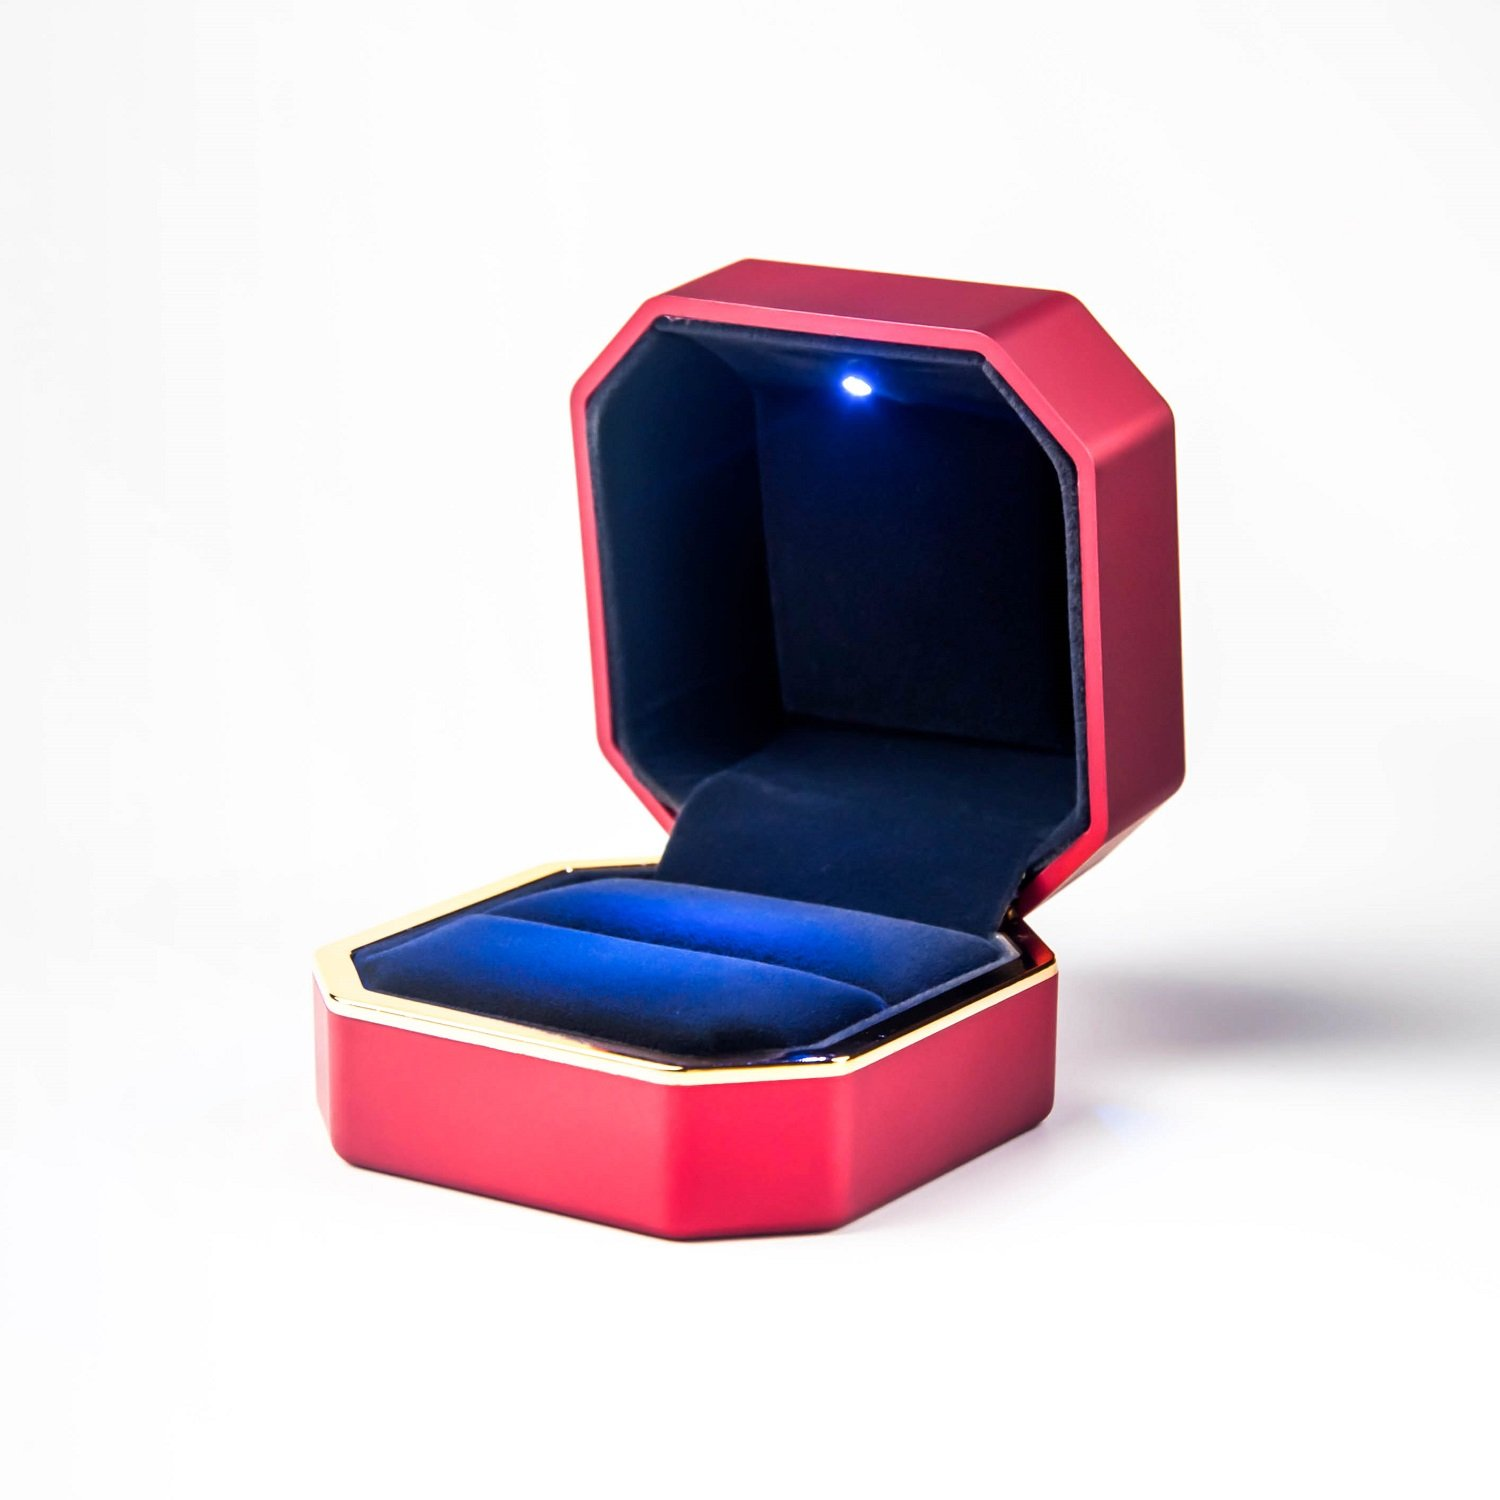 Fairycat Ring Box with LED light,Earrings,Coin,Jewelry Case, for Proposal,Engagement,Wedding,Gift (Red)